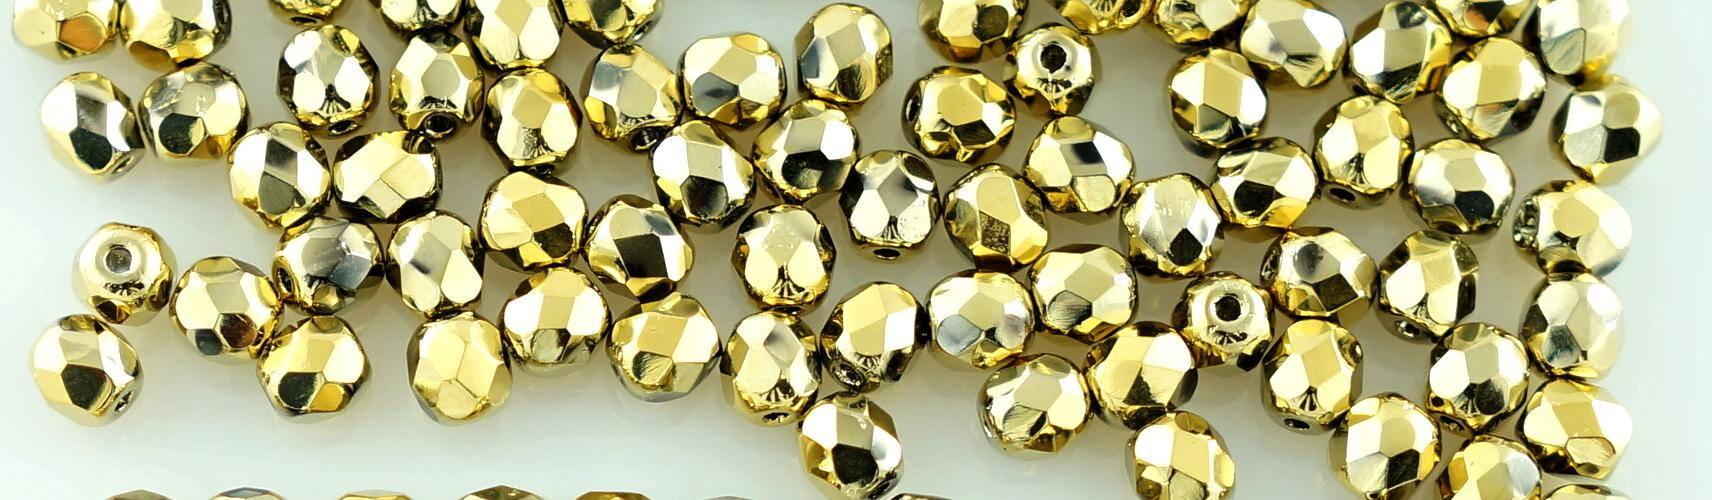 60a305590692b Round Faceted Fire Polished Czech Beads - Picasso Beads - Czech ...